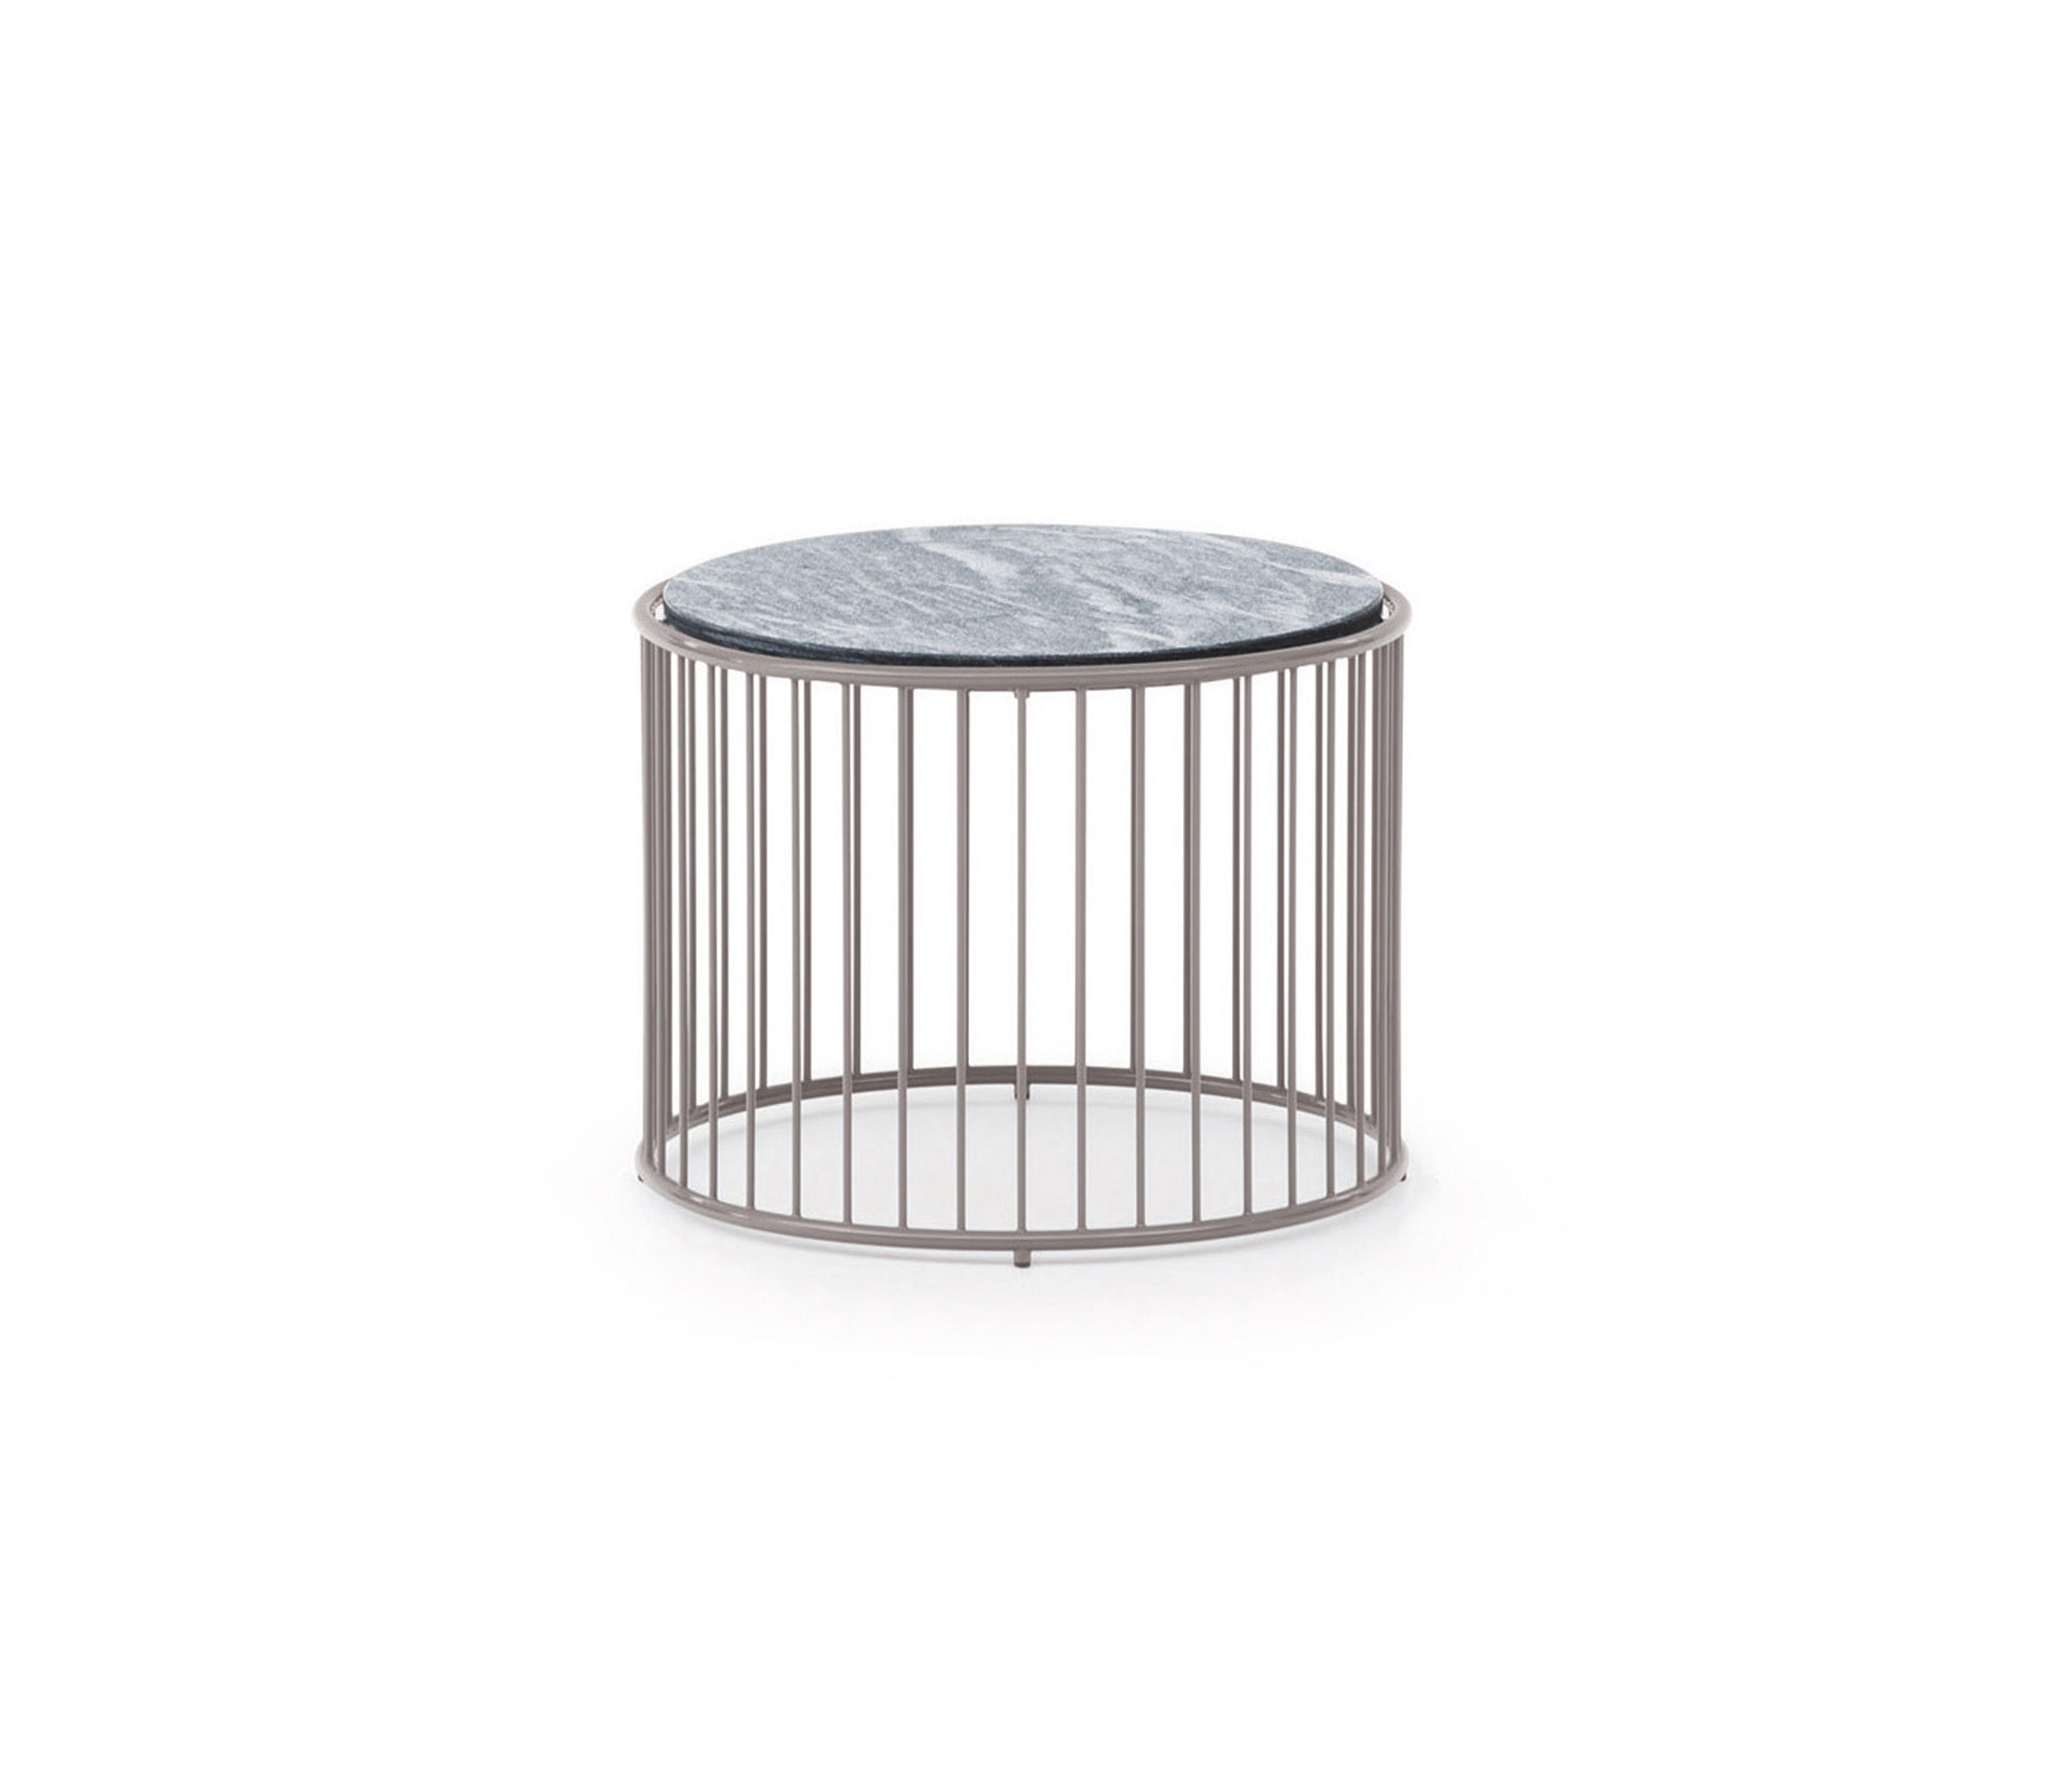 Caulfield outdoor coffee table side tables from minotti architonic caulfield outdoor coffee table by minotti side tables geotapseo Images